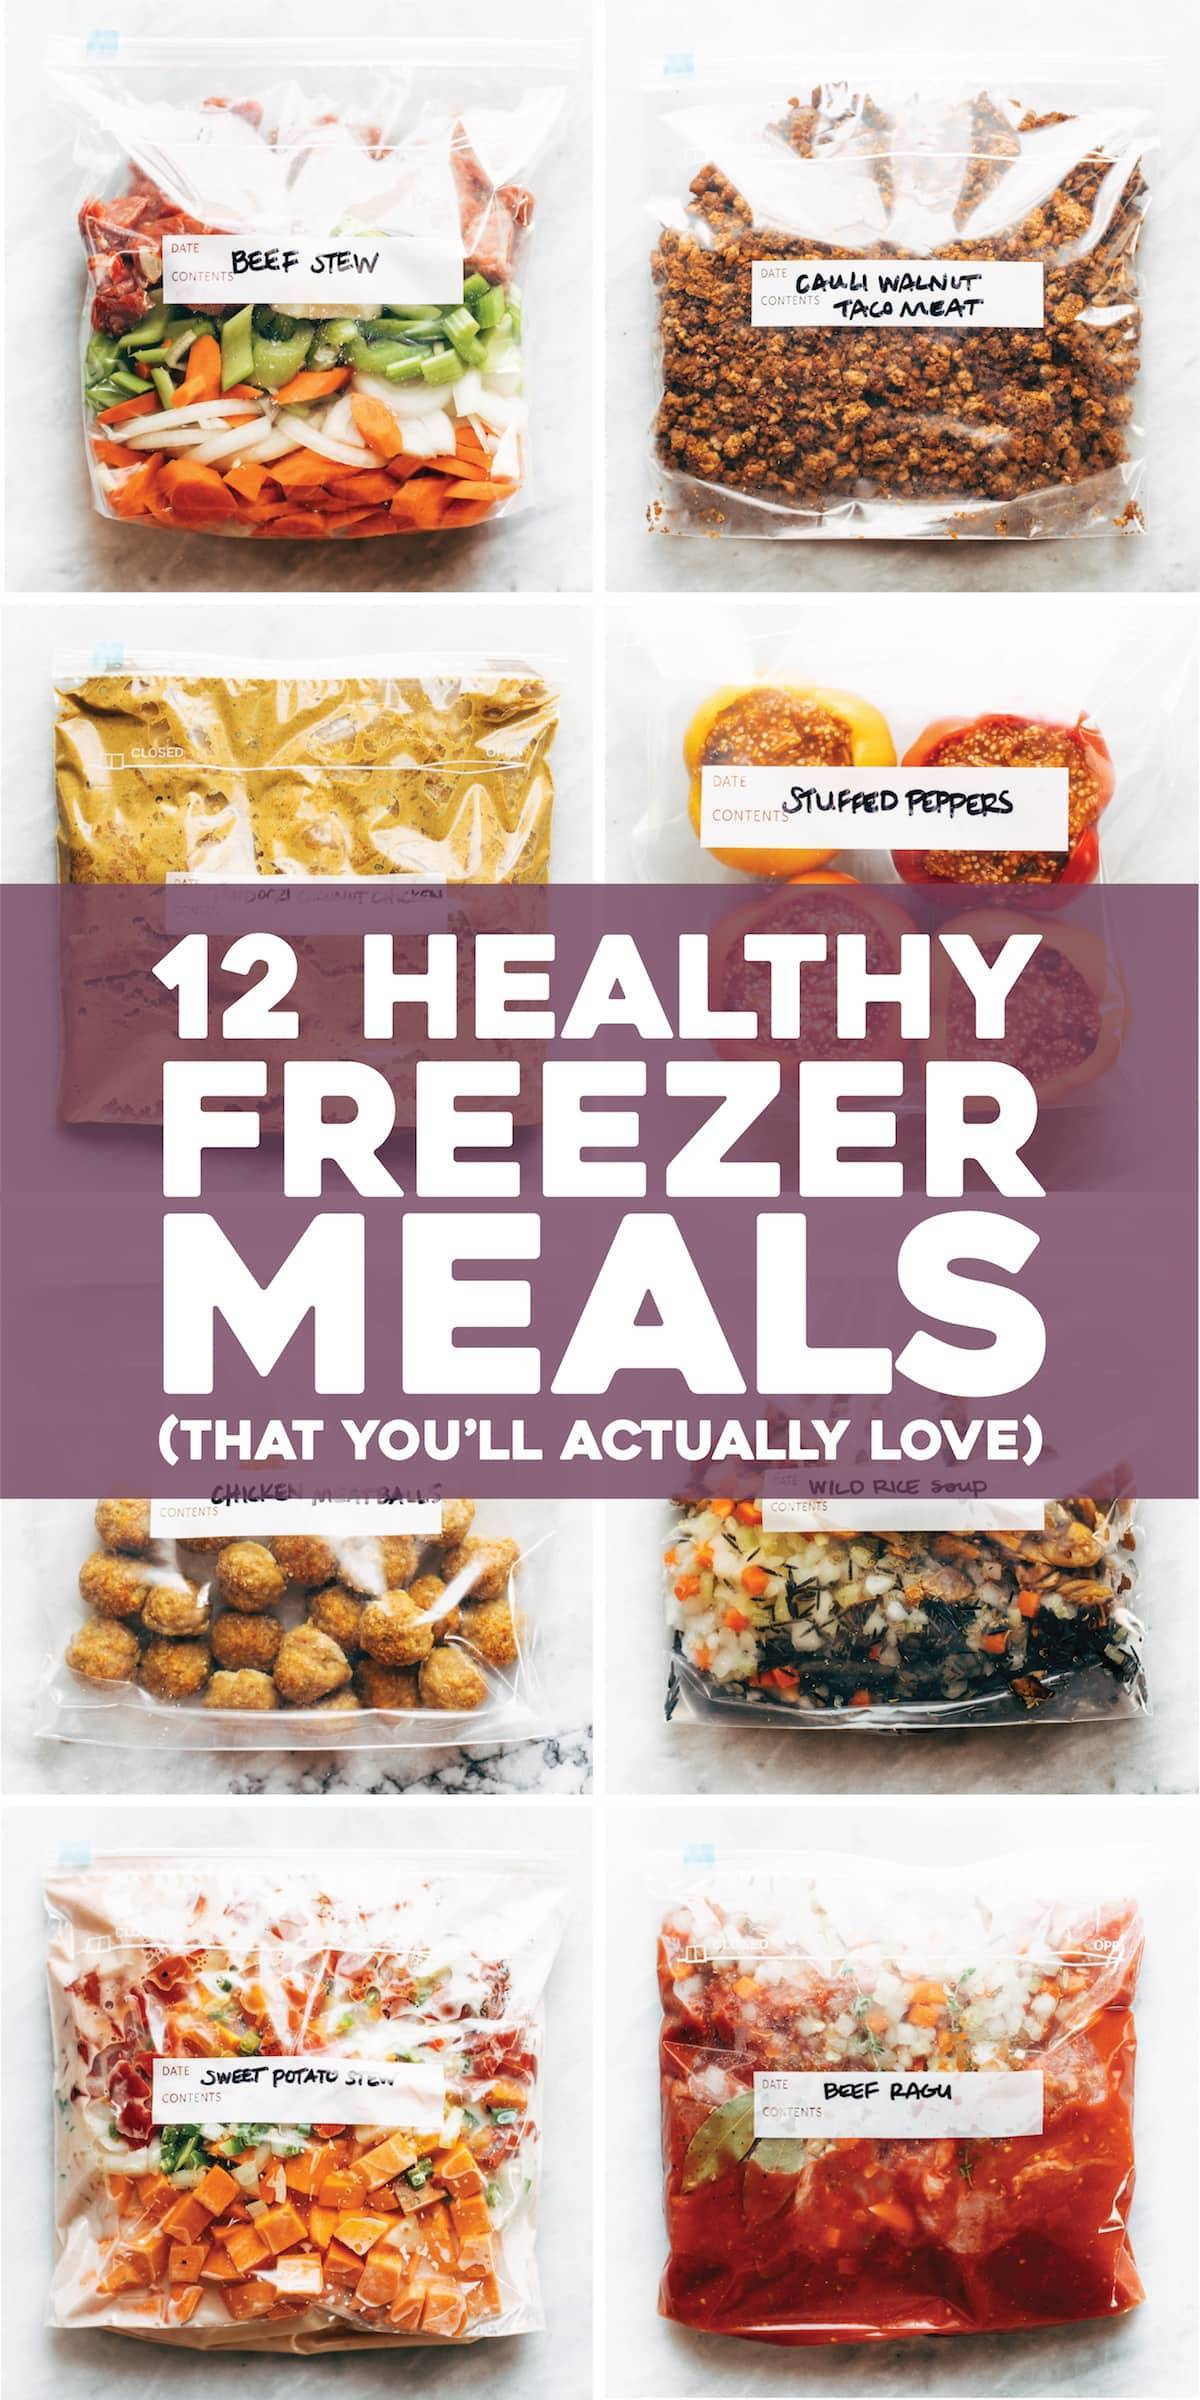 12 Healthy Freezer Meals (That You?ll Actually Love)